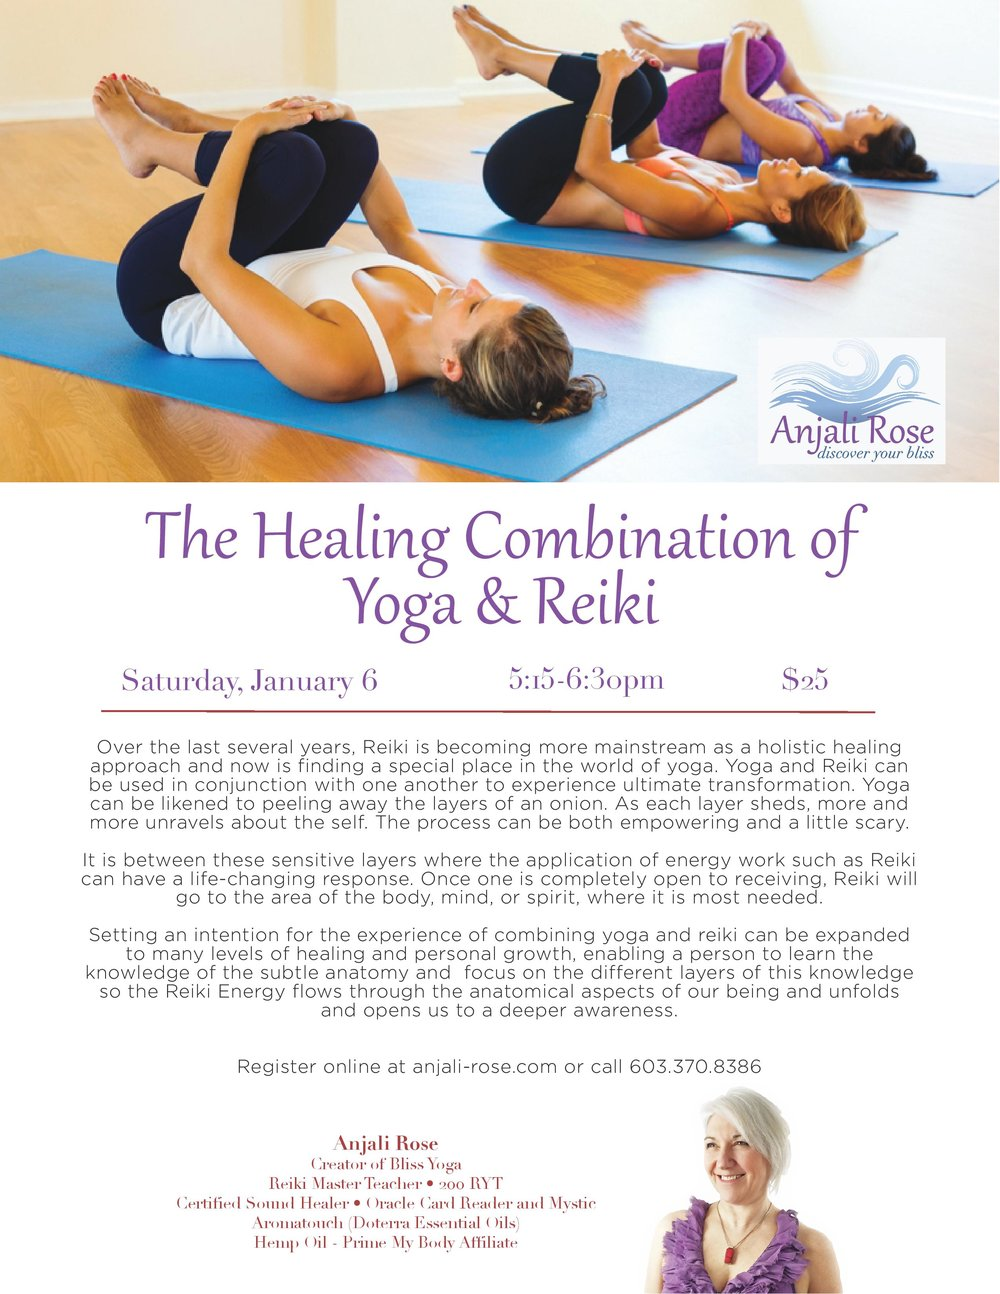 AR_Healing Combination of Yoga Reiki_Poster-page-001.jpg